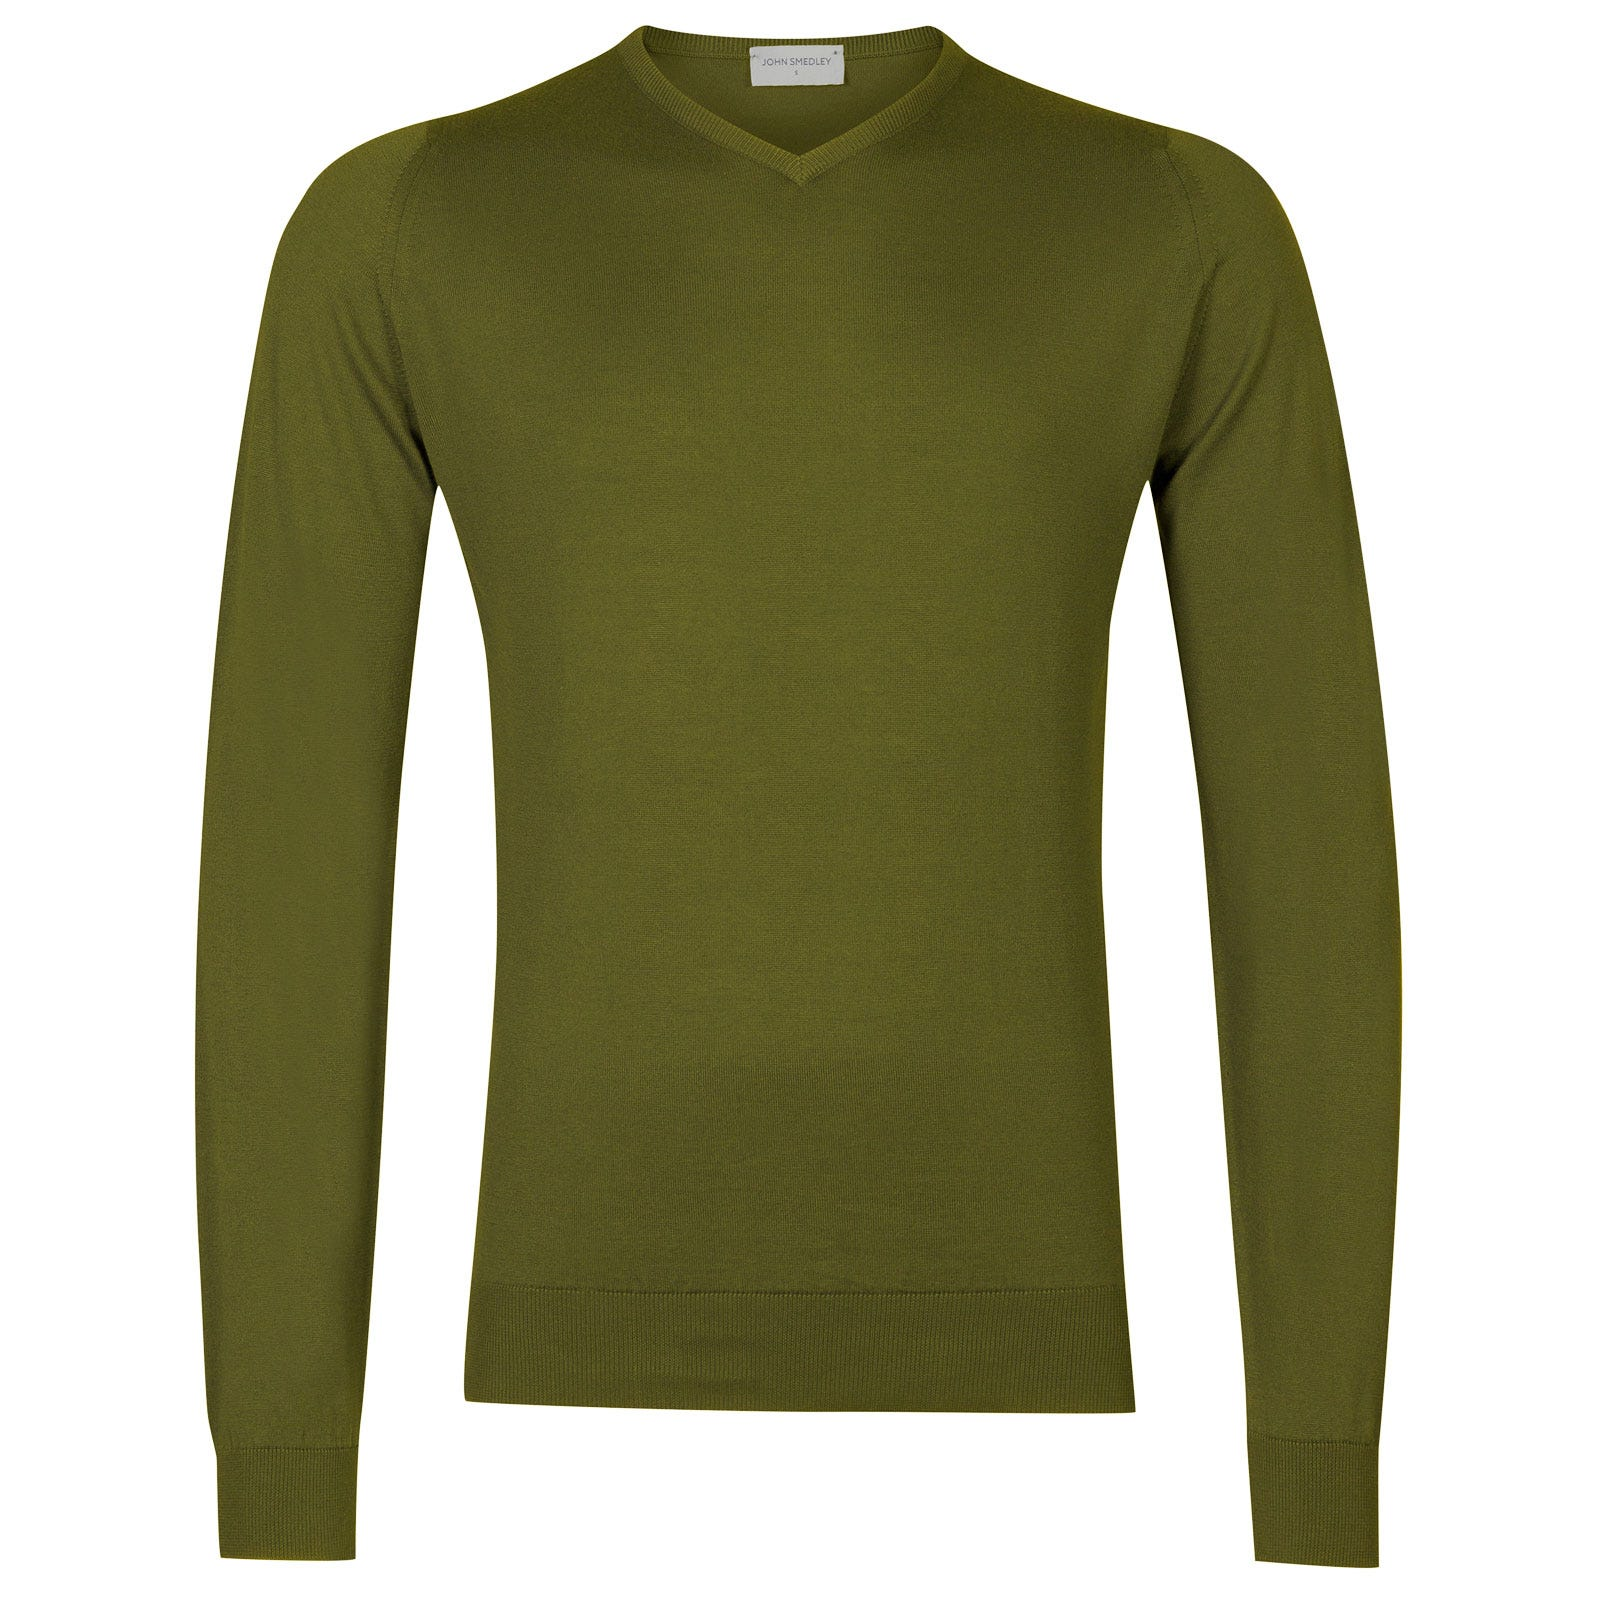 John Smedley Aydon Sea Island Cotton Pullover in Lumsdale Green-M